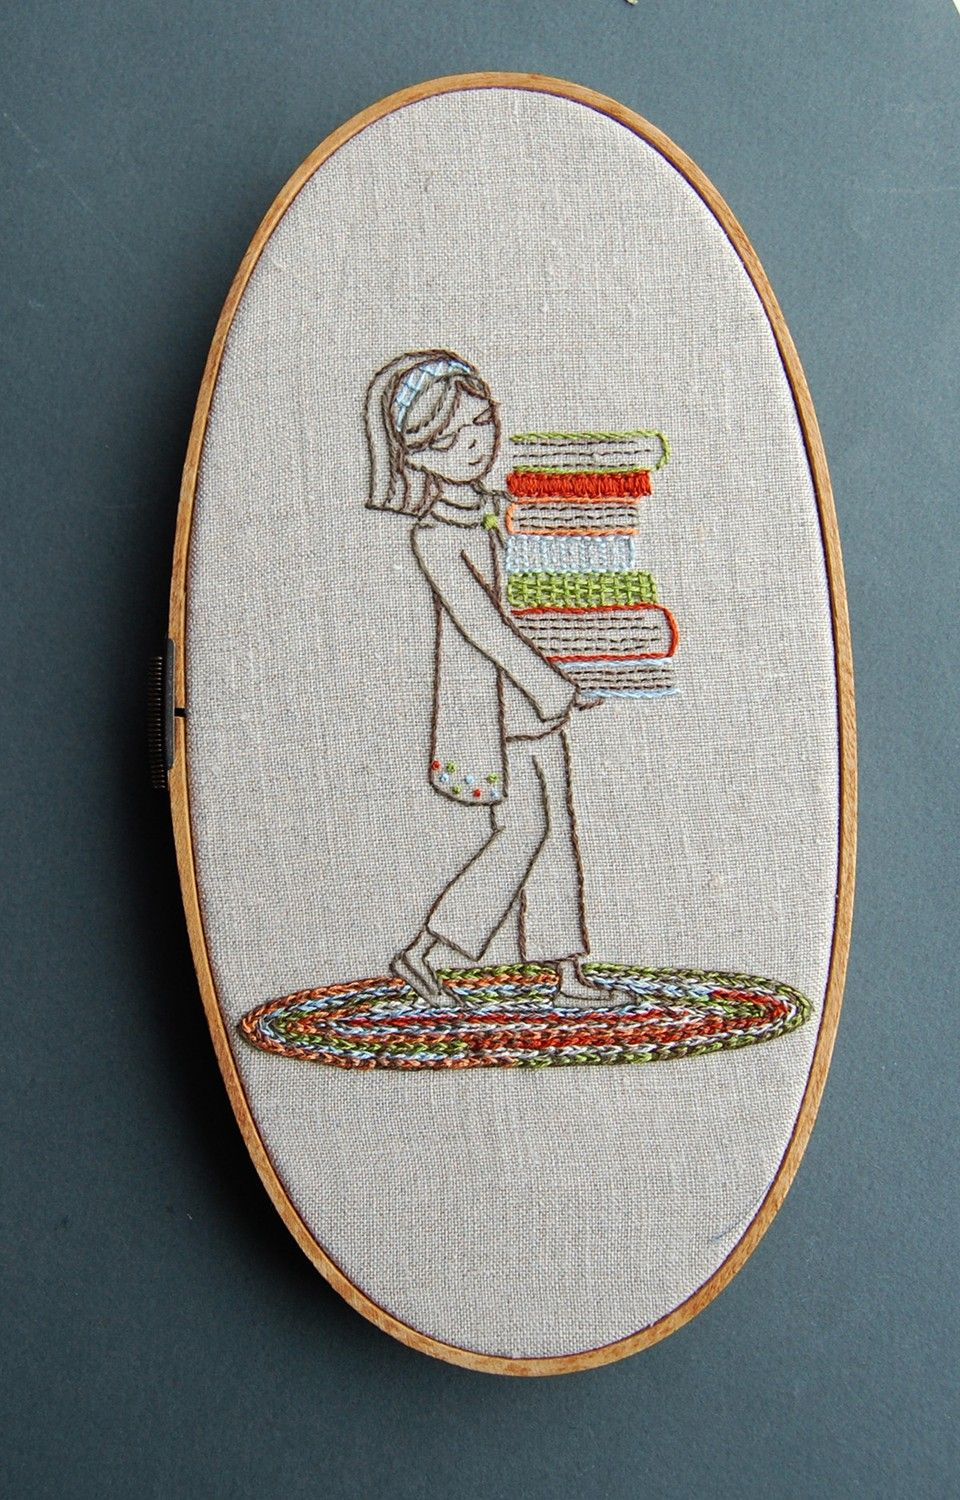 Embroidery Patterns BOOKSMART Modern Hand Embroidery Patterns PDF Download Back To School DIY ...